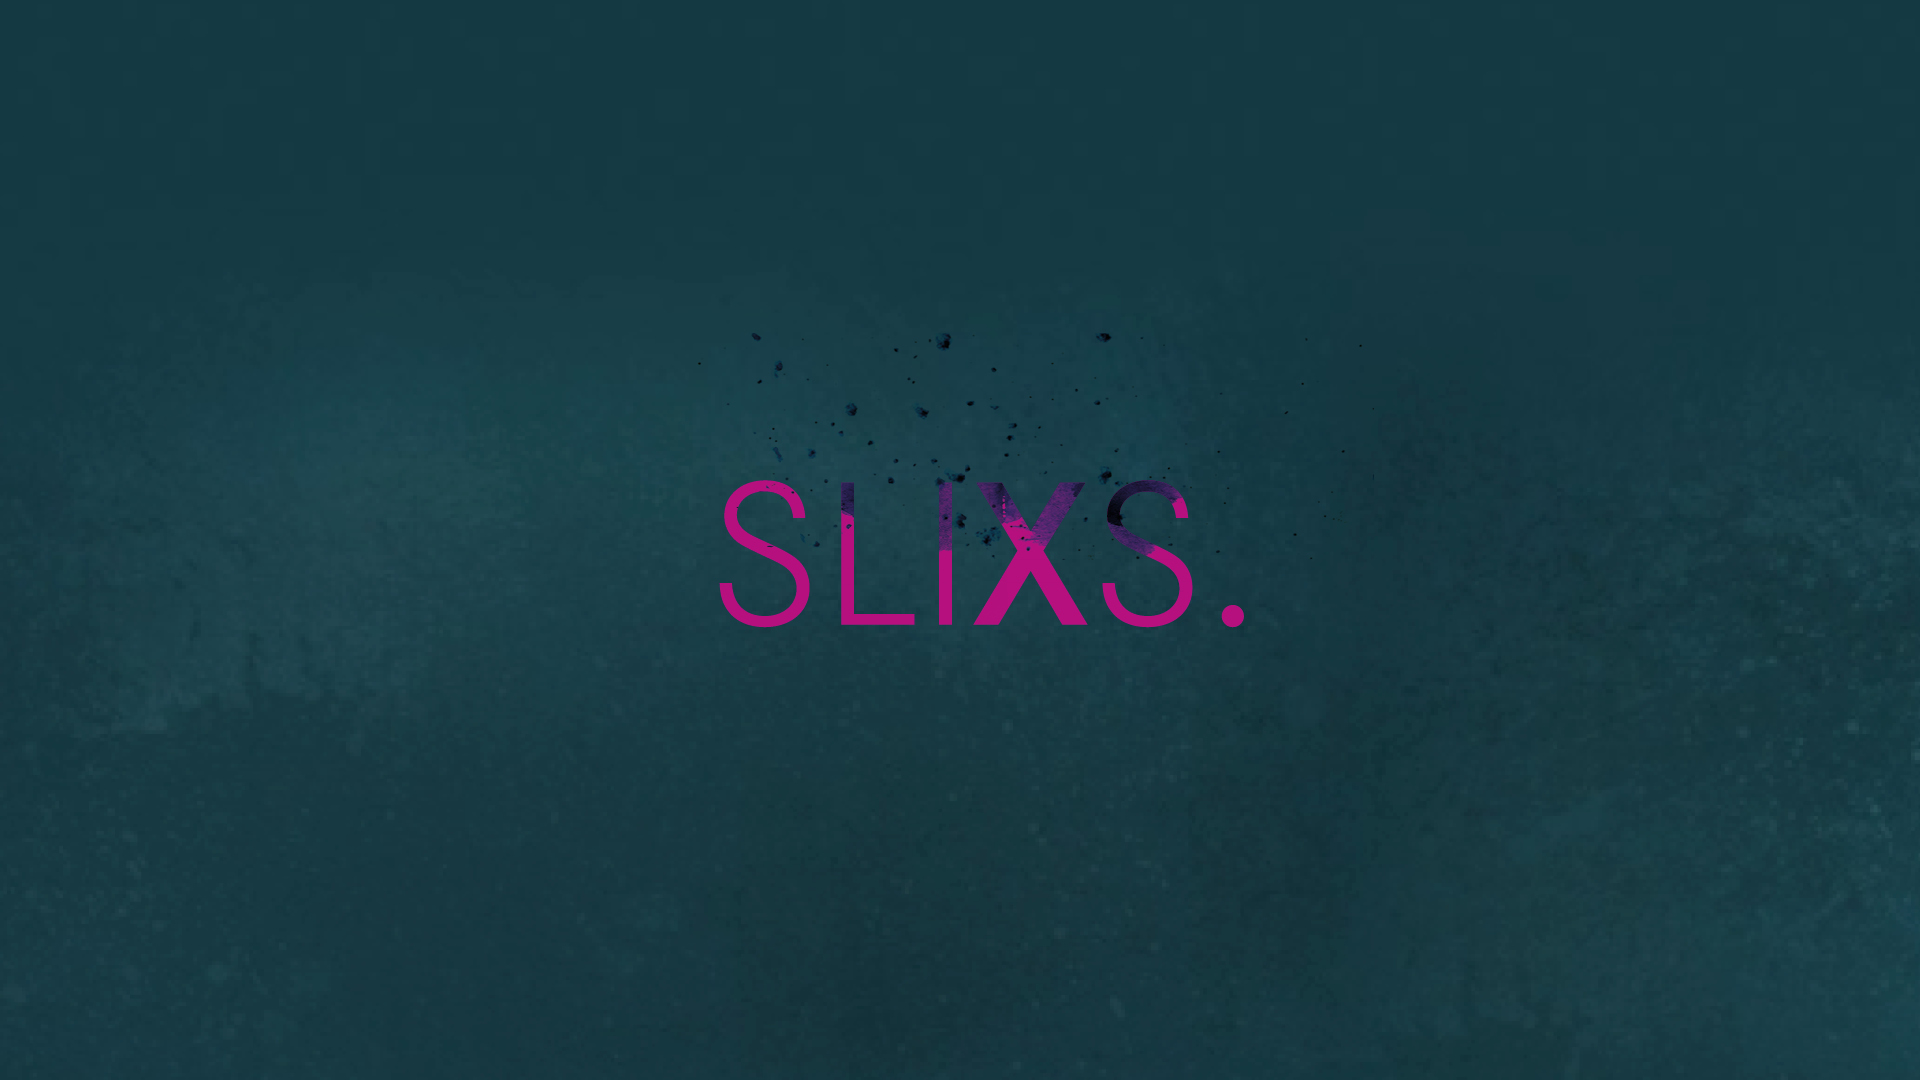 SLIXS Wallpaper A cappella